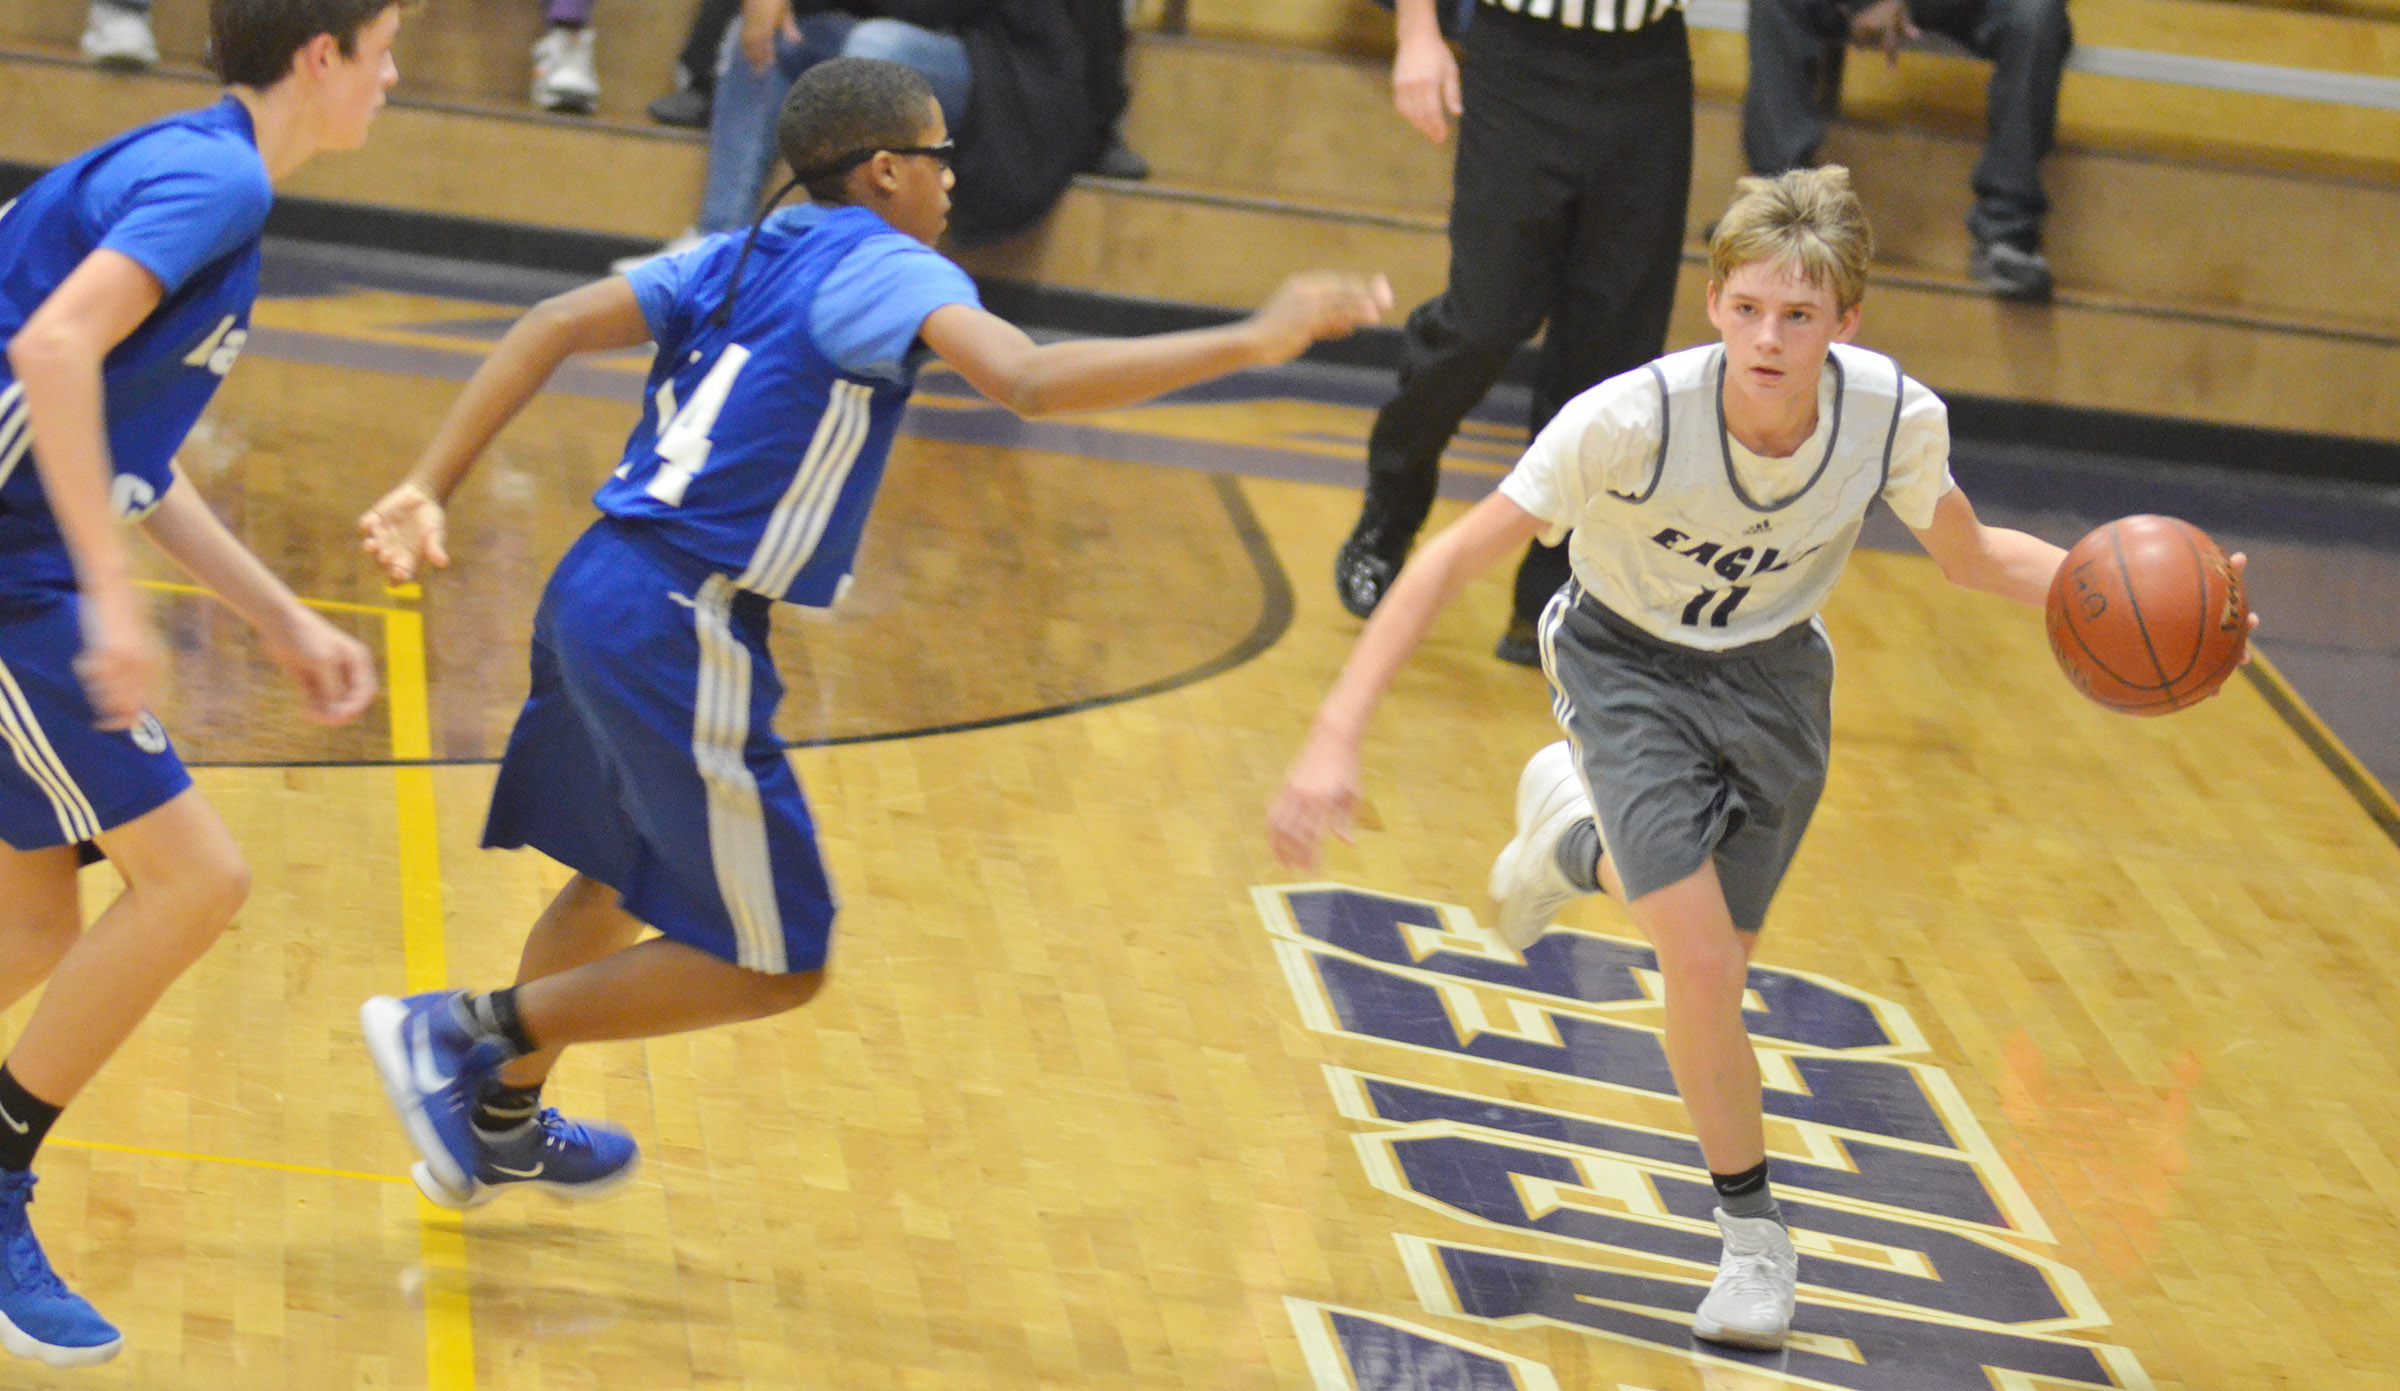 CHS sophomore Cameron Bright dribbles.